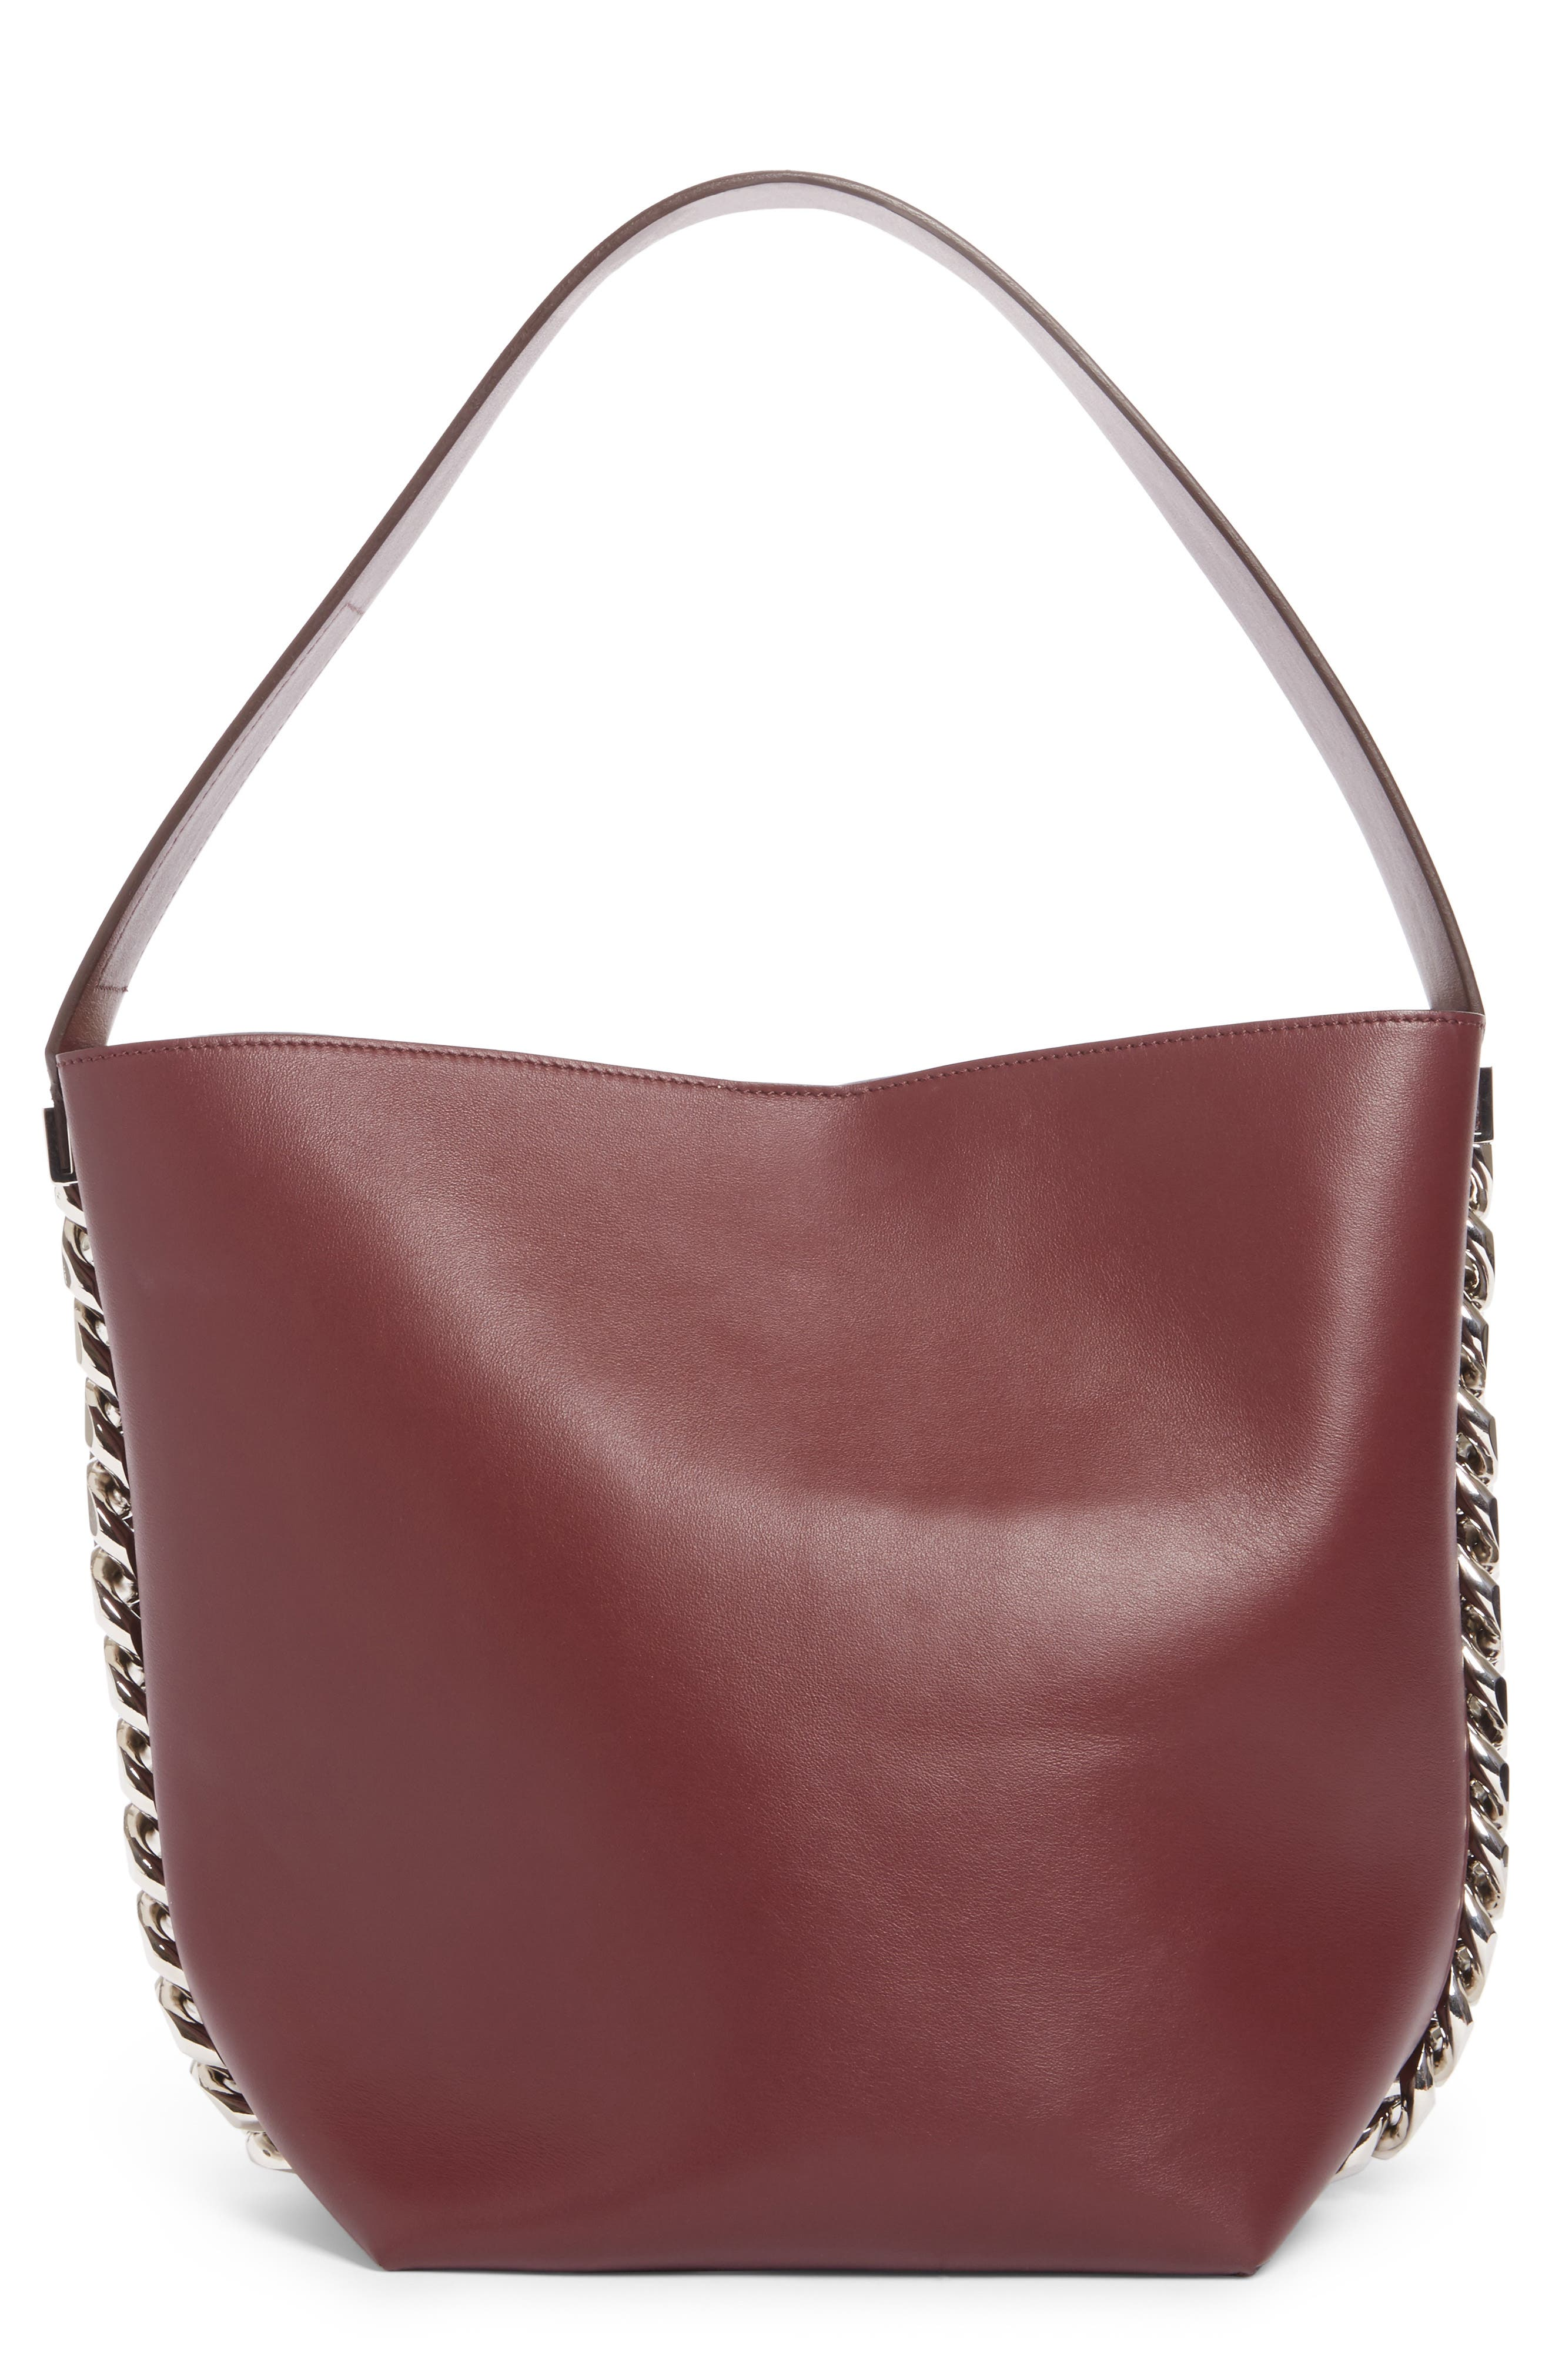 Infinity Calfskin Leather Bucket Bag,                             Main thumbnail 1, color,                             Oxblood